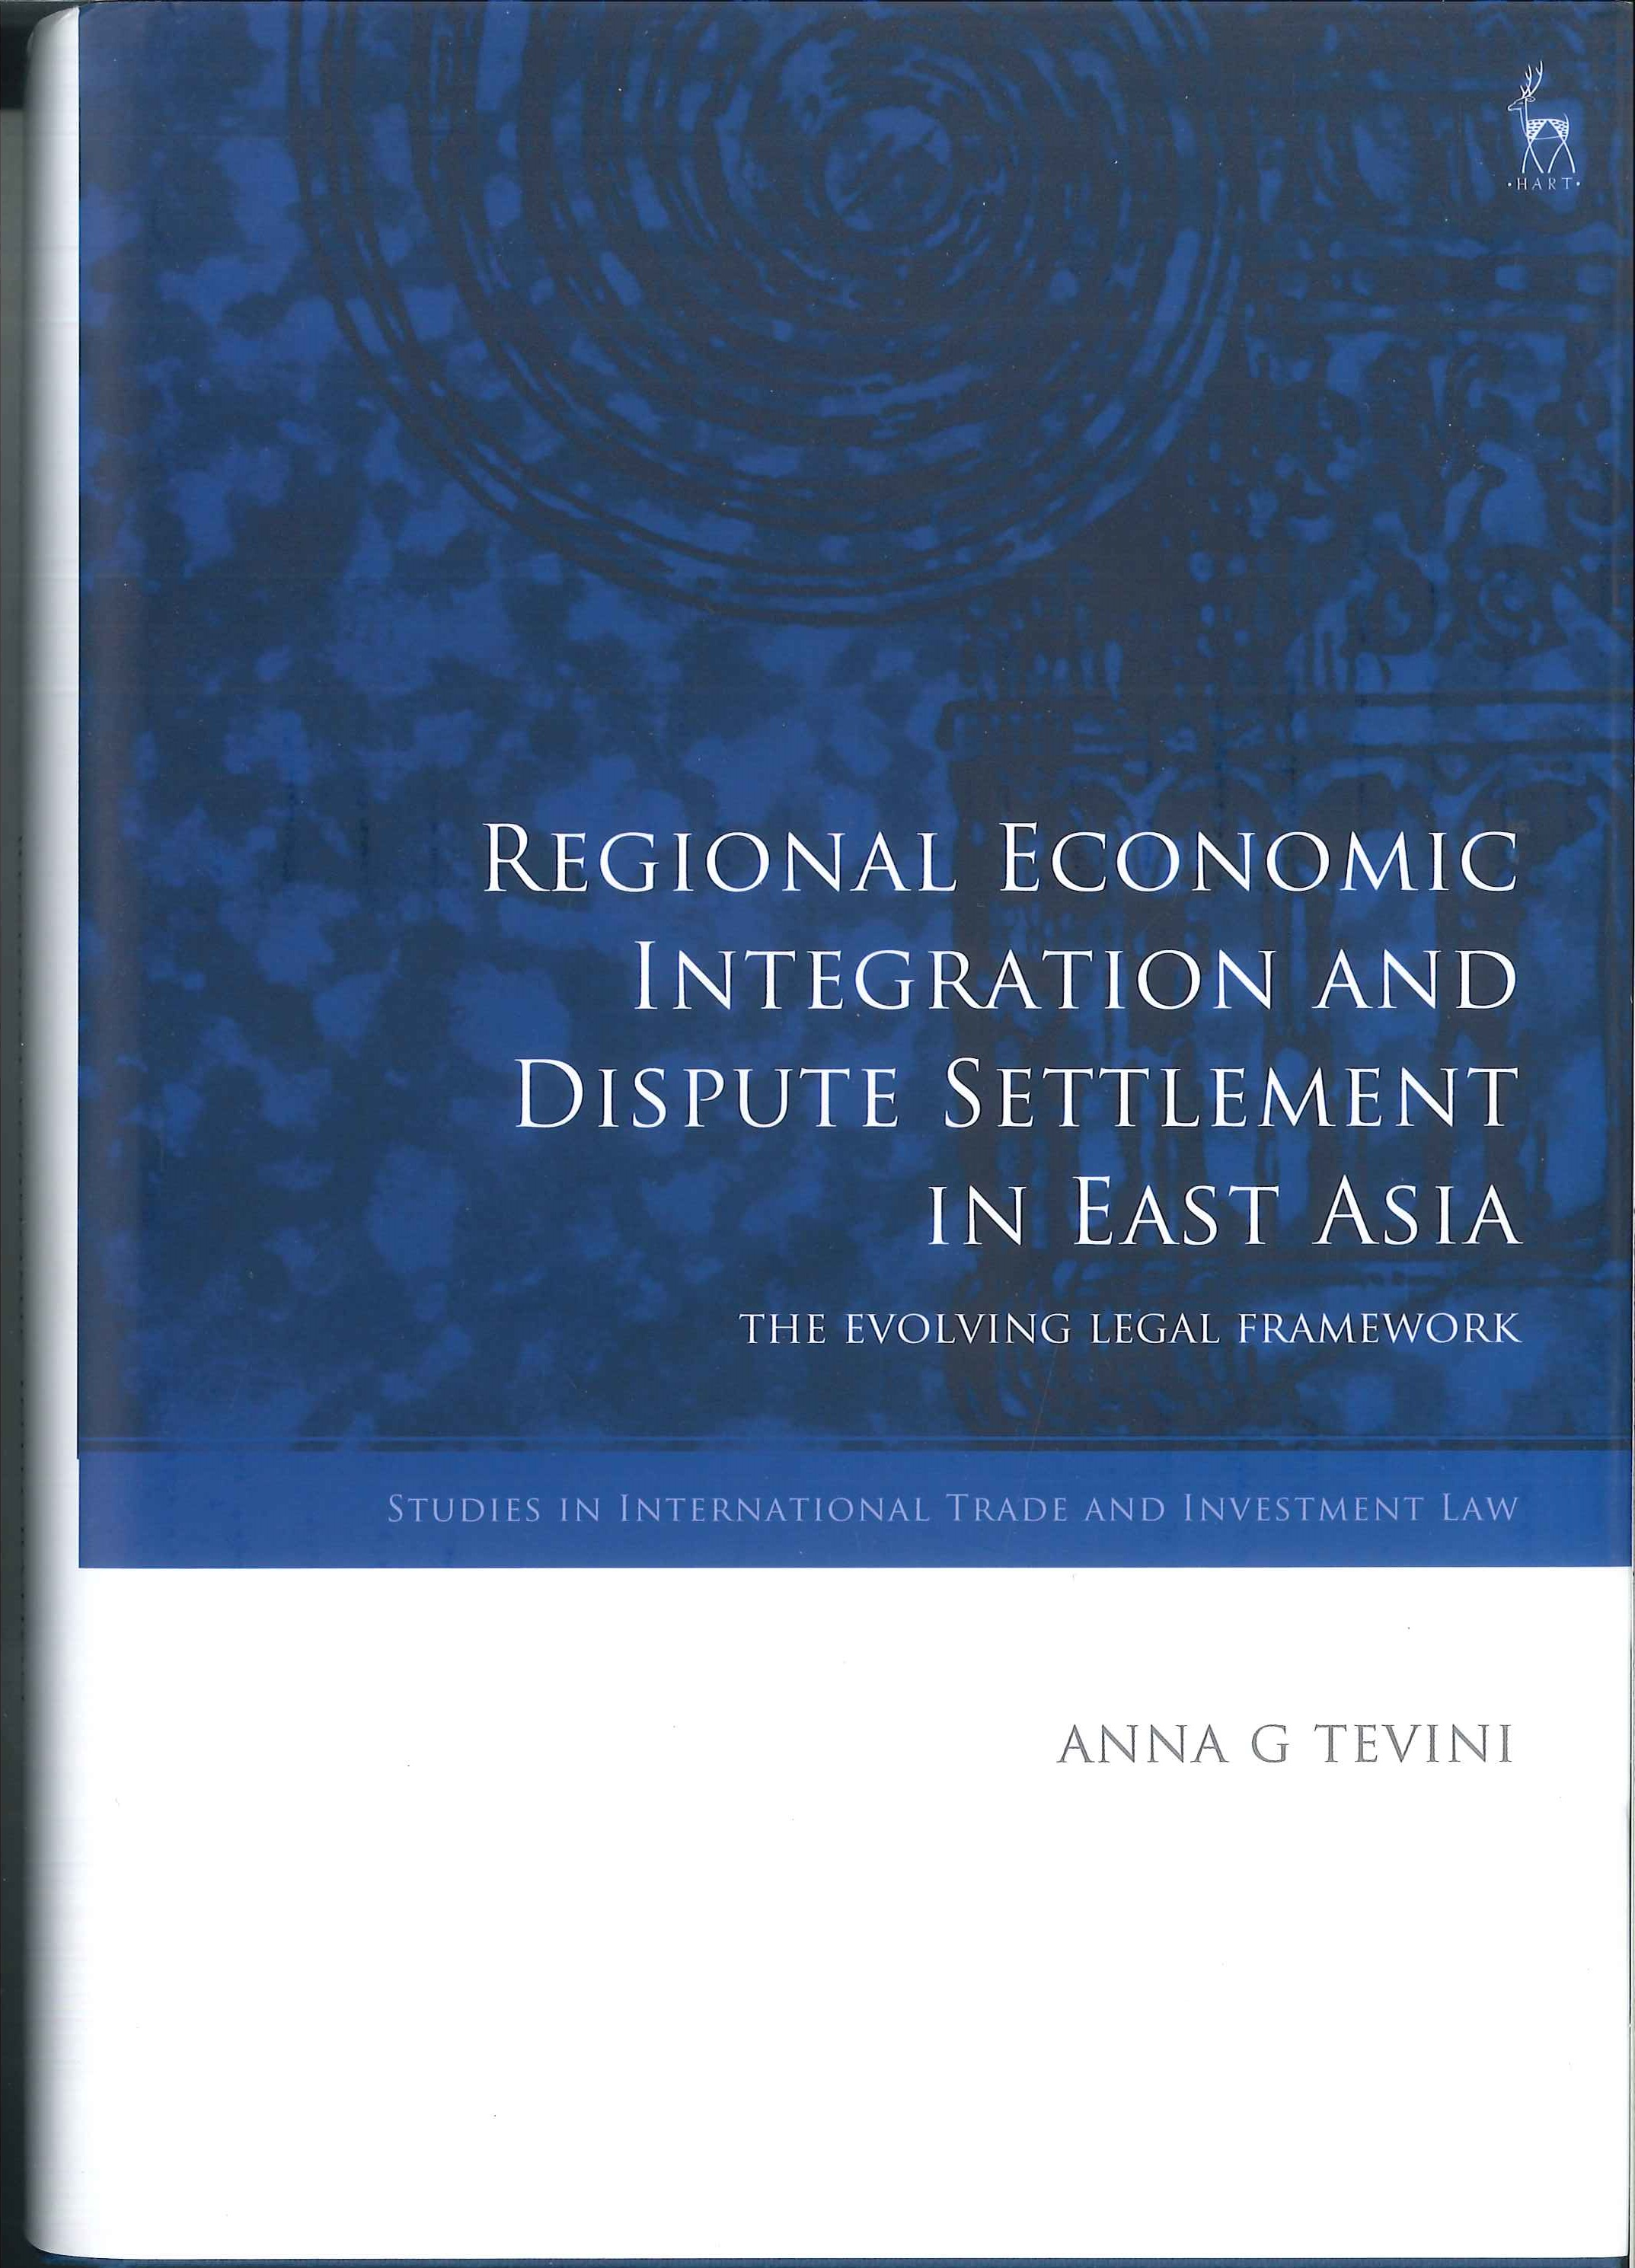 Regional economic integration and dispute settlement in East Asia:the evolving legal framework